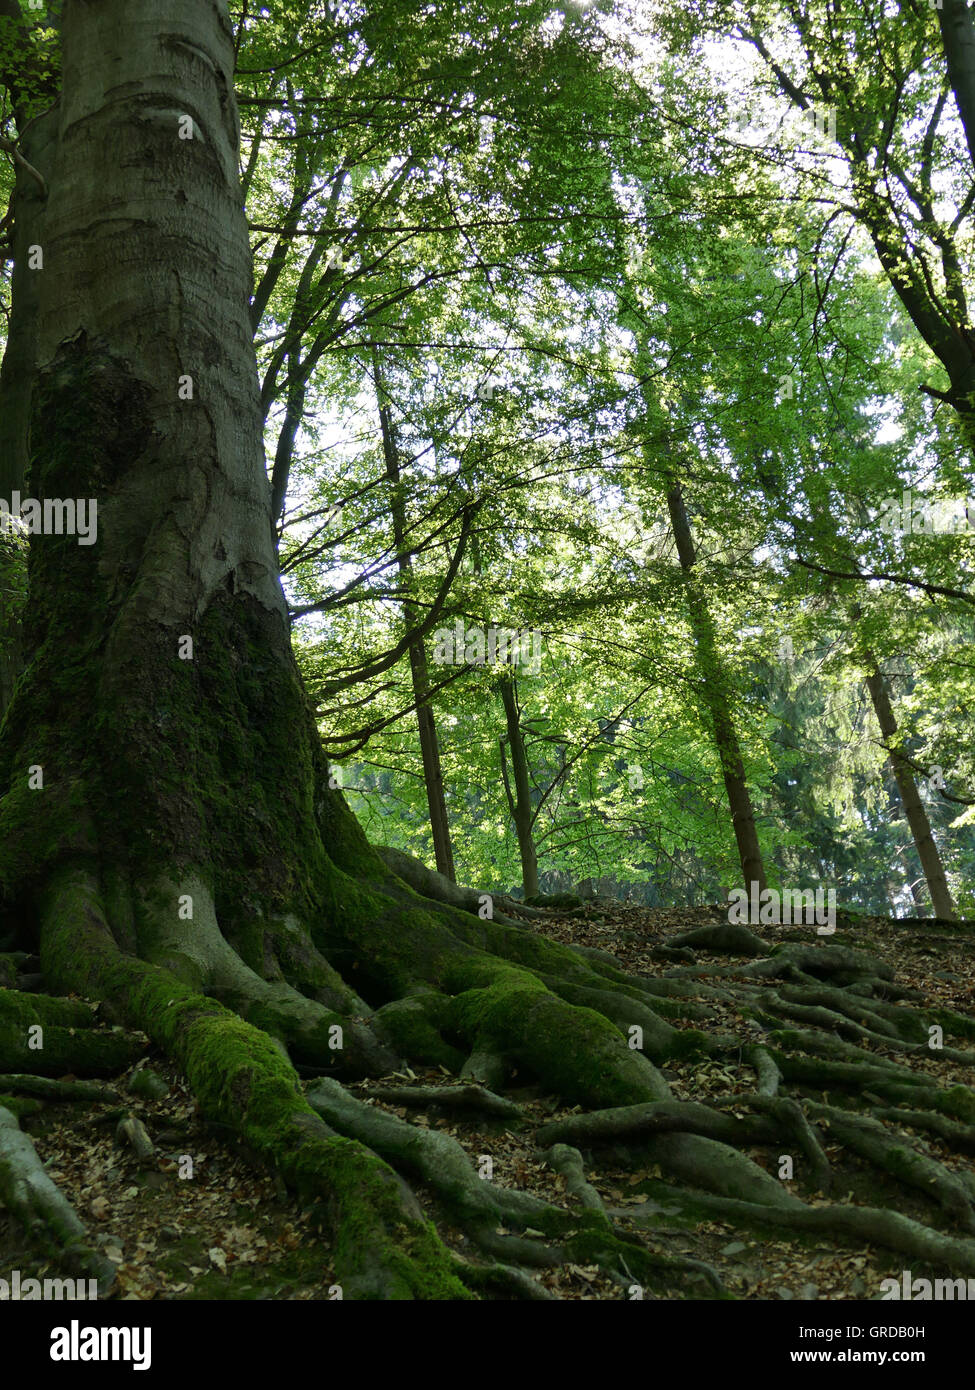 Mighty Old Tree In The Forest - Stock Image